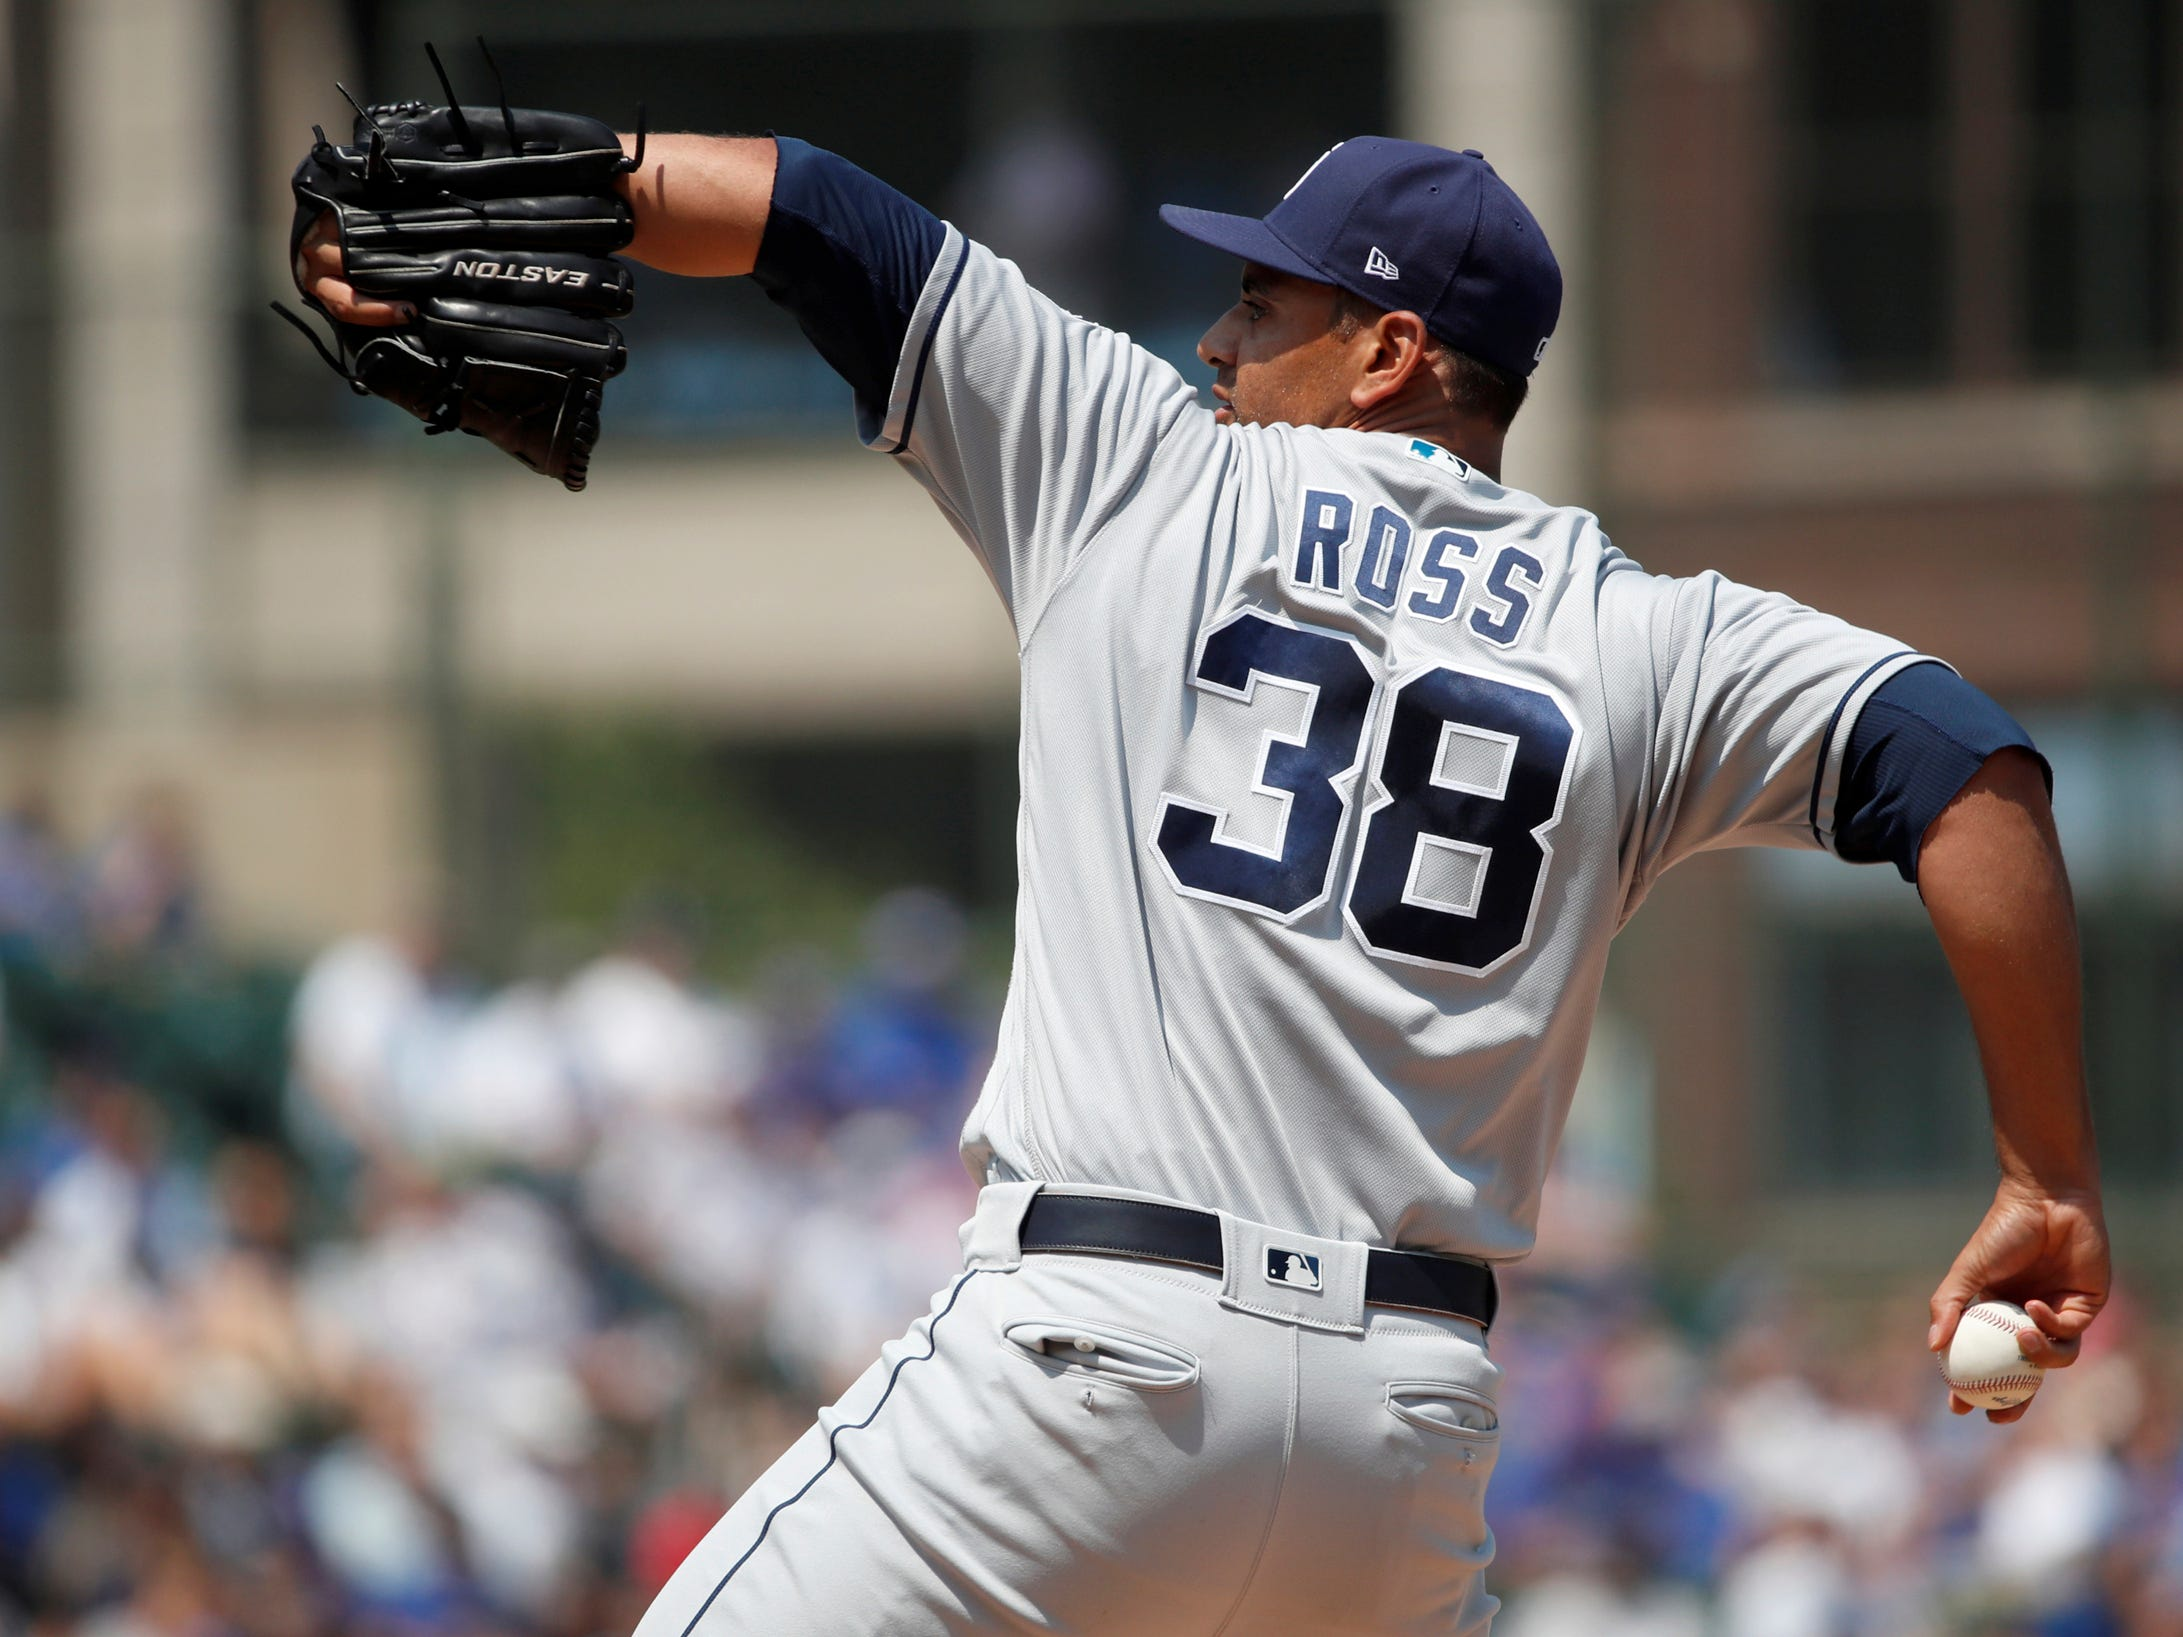 San Diego Padres starting pitcher Tyson Ross delivers during the first inning of a game against the Chicago Cubs, on Friday, Aug. 3, 2018.